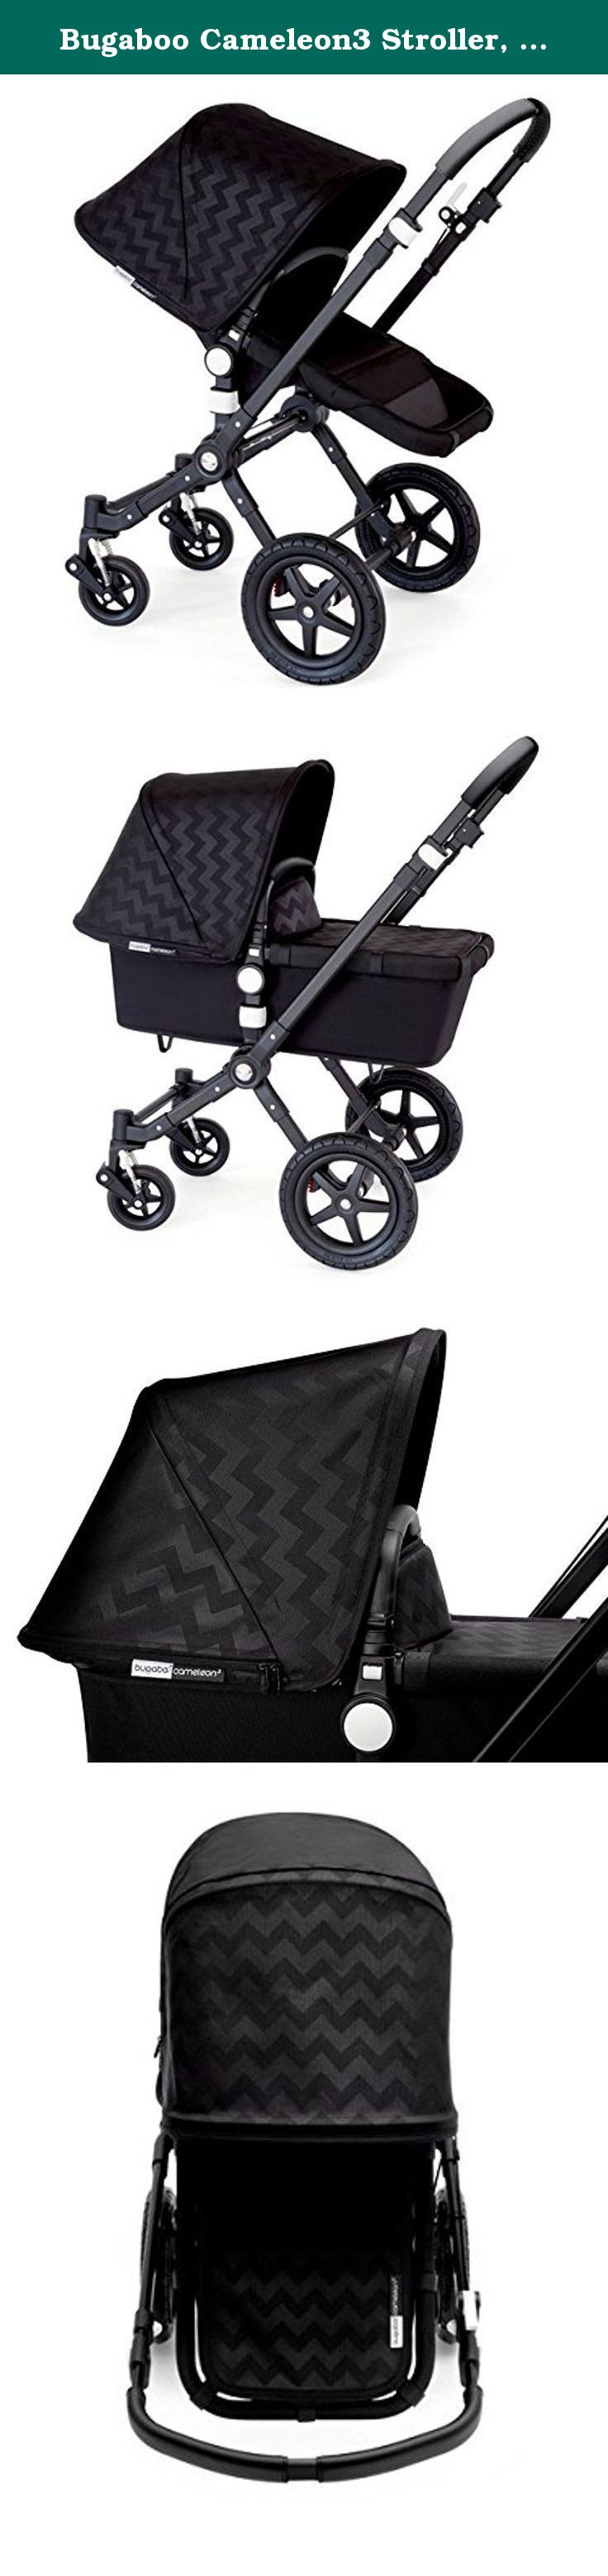 Bugaboo Cameleon3 Stroller, LIMITED EDITION Intense Black